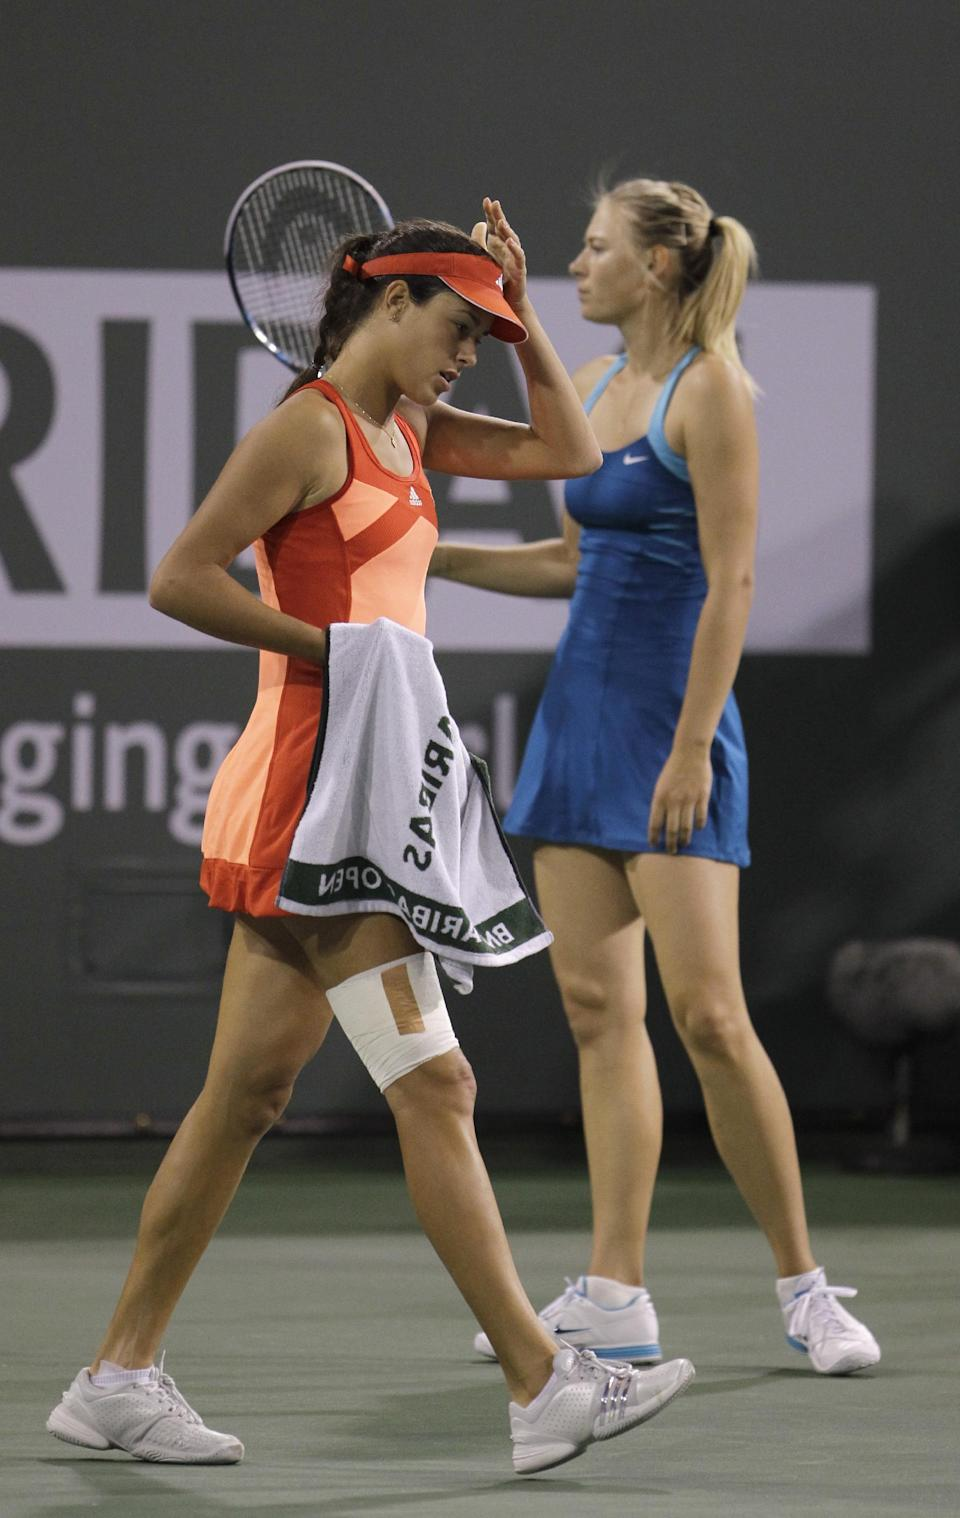 Ana Ivanovic, of Serbia, walks past Maria Sharapova, of Russia, after being treated by a trainer during a women's semifinal match at the BNP Paribas Open tennis tournament Friday, March 16, 2012, in Indian Wells, Calif. Ivanovic retired from the match due to a left hip injury. (AP Photo/Darron Cummings)